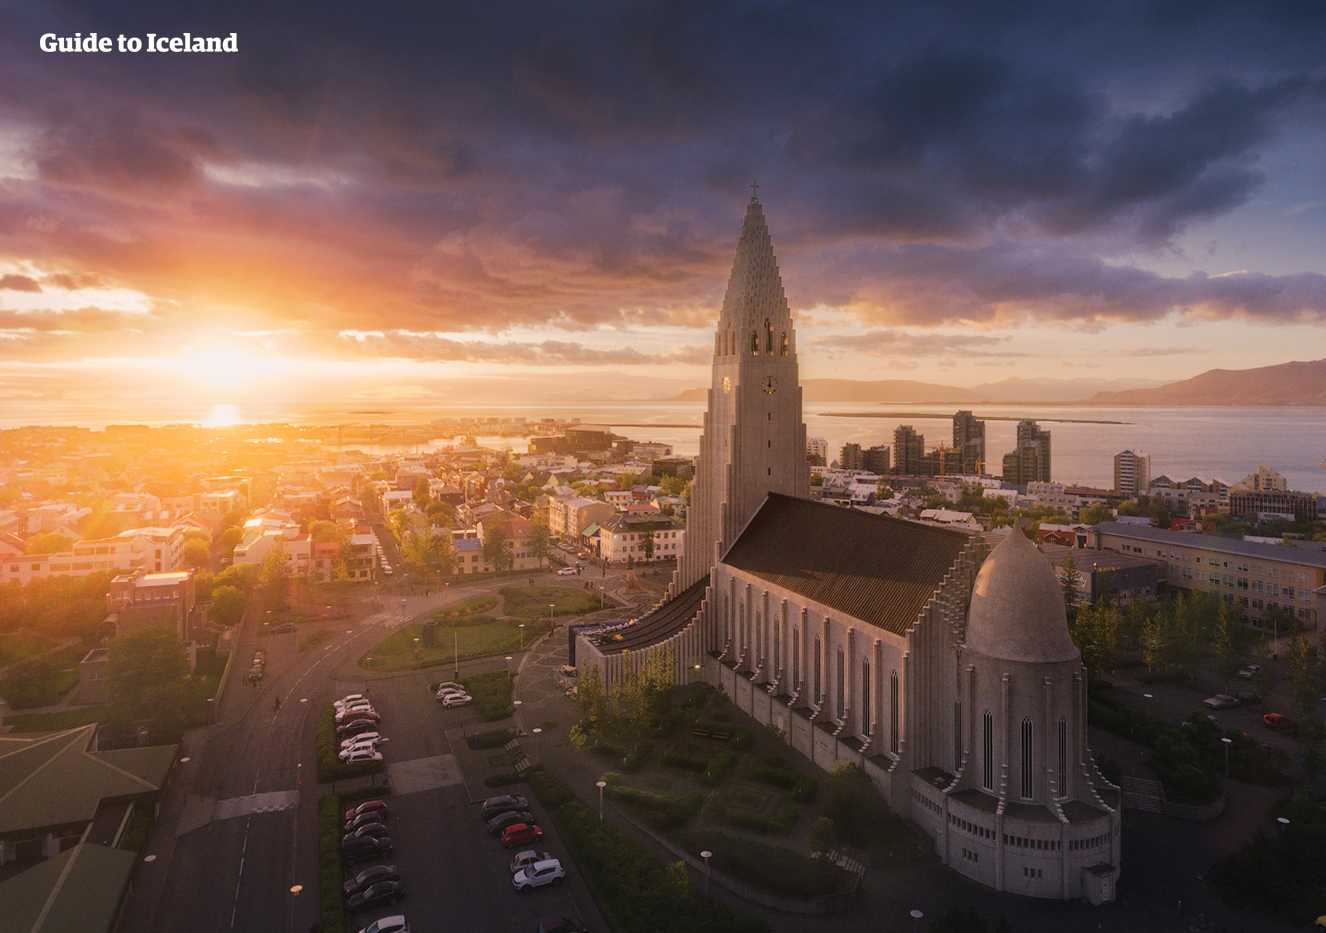 Hallgrímskirkja's architecture is inspired by Iceland's incredible rock formations.